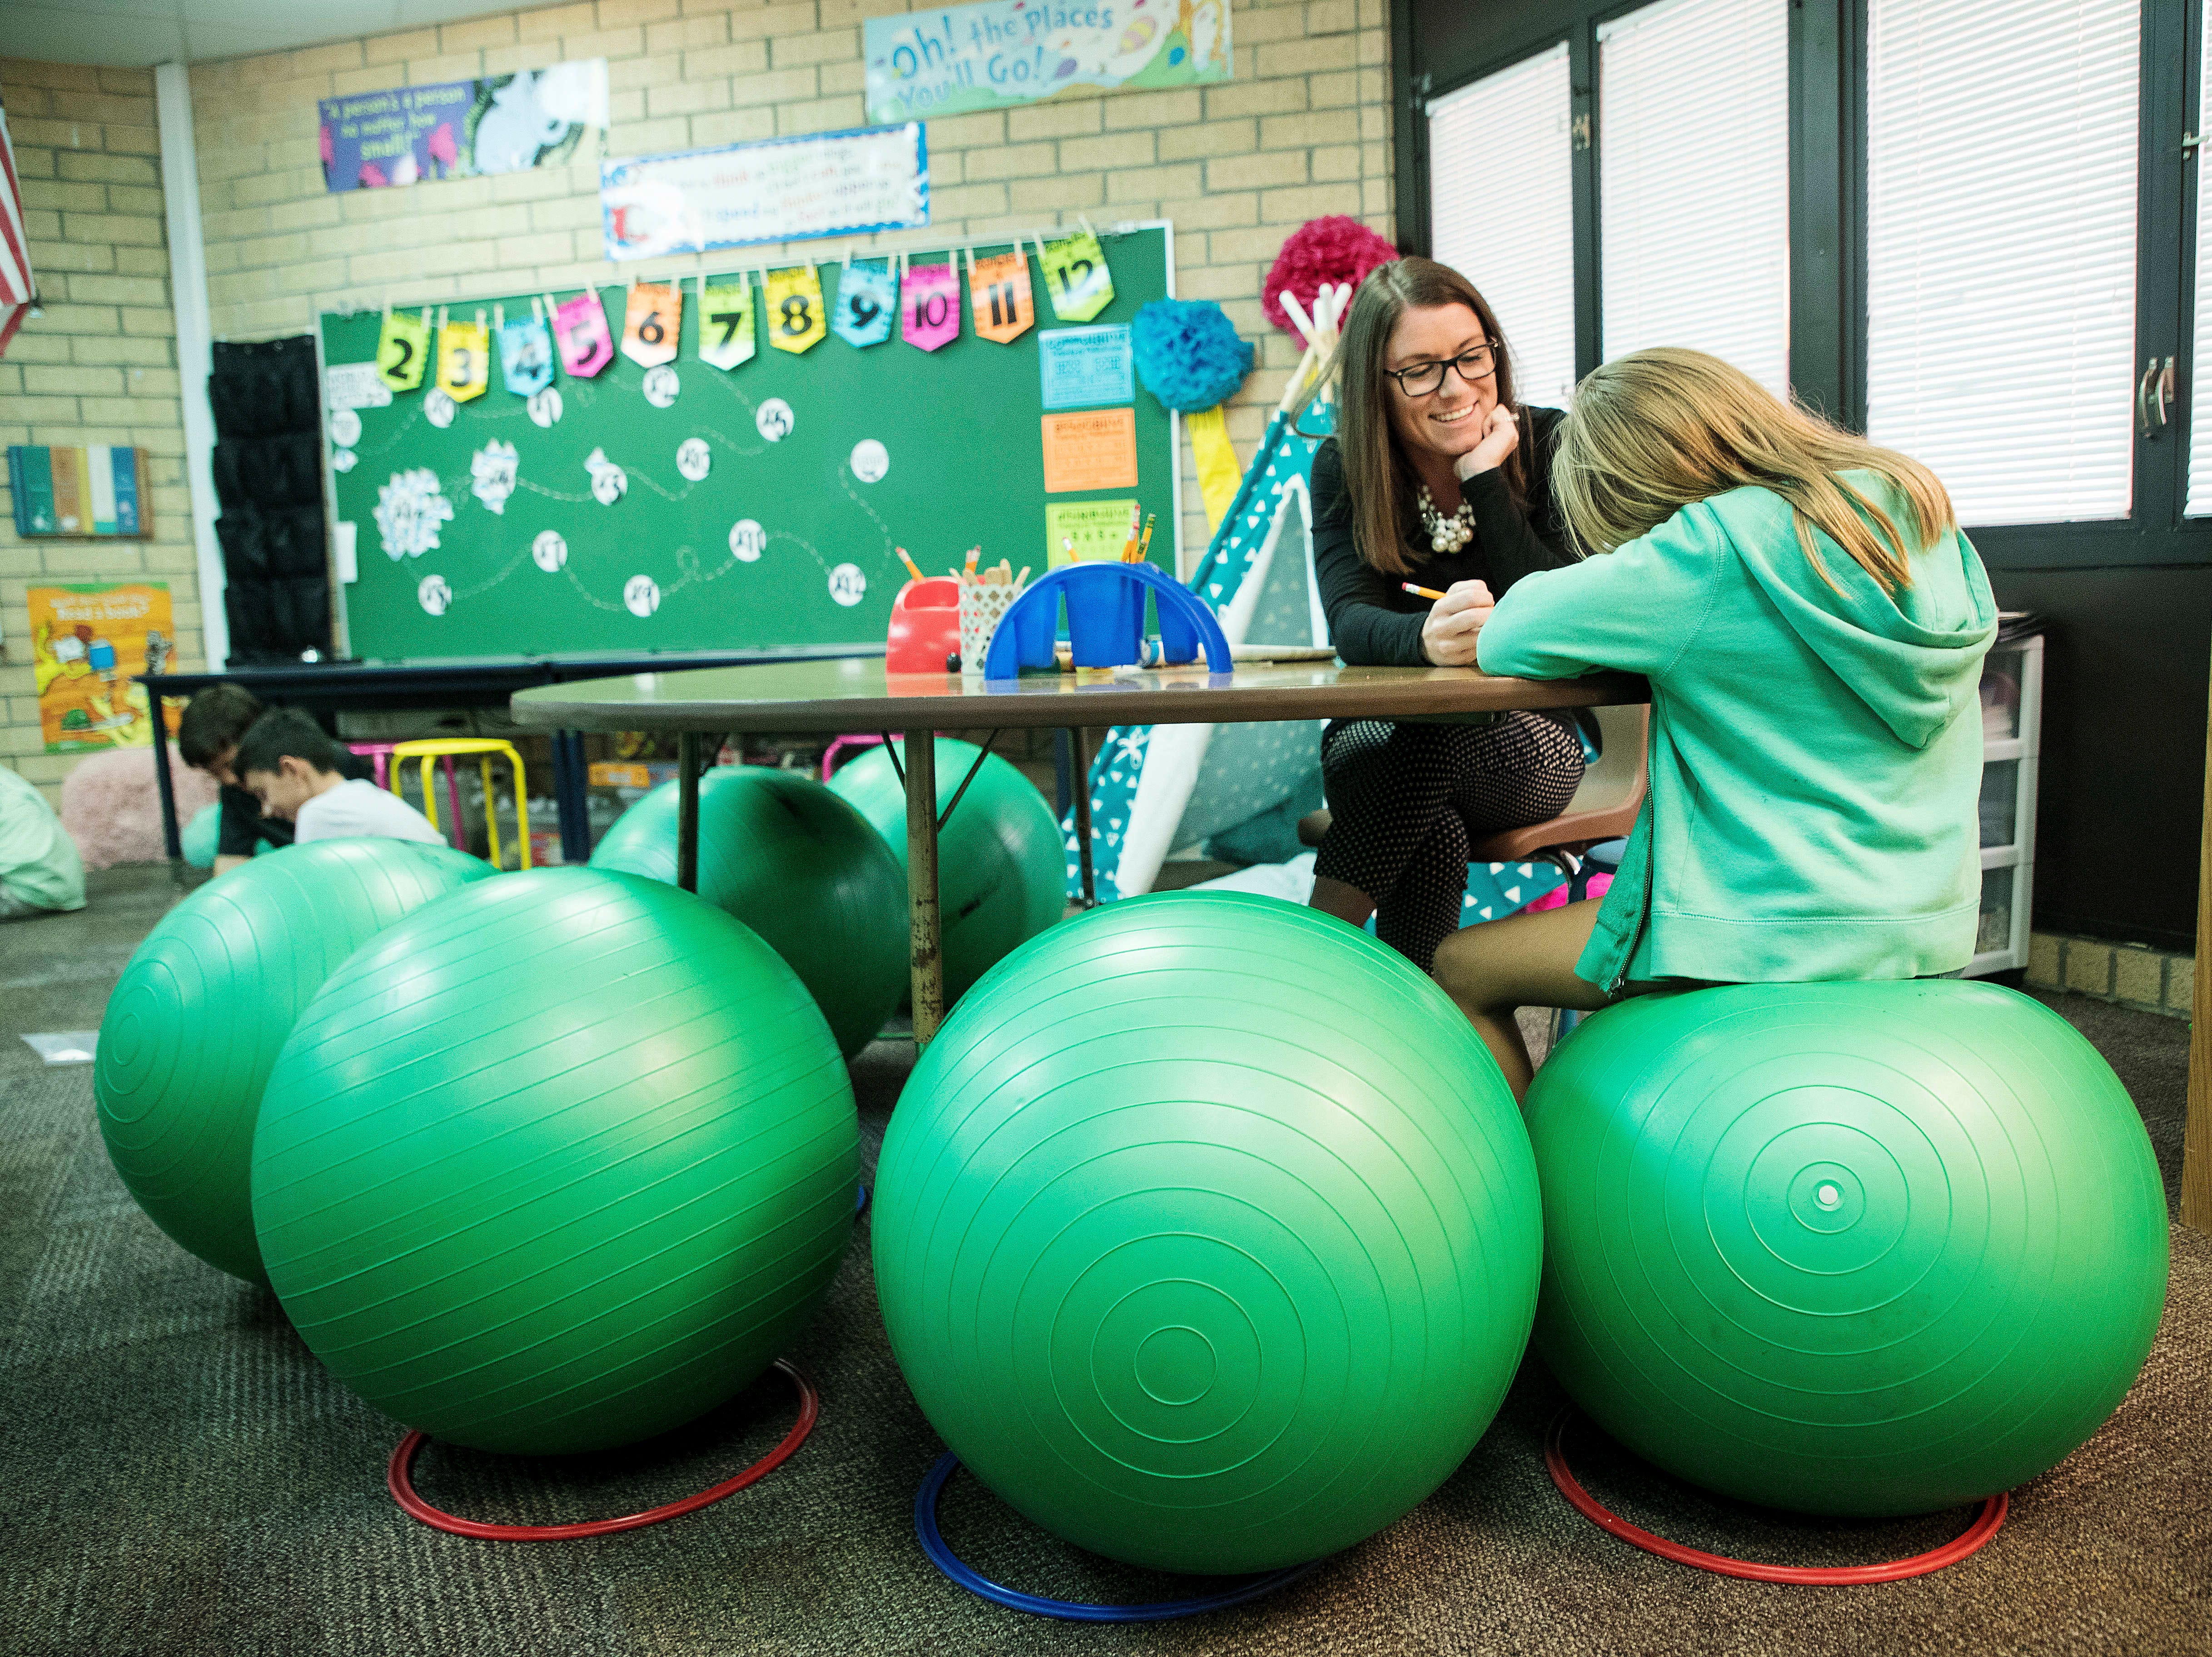 Gulf Elementary school teacher Kristina Gale works with Makenzie Brown, 9. The class uses a flexible seating arrangement which allows students to make choices on where they sit and on what kind of seating they want. Teachers say they have seen an increase in performance.